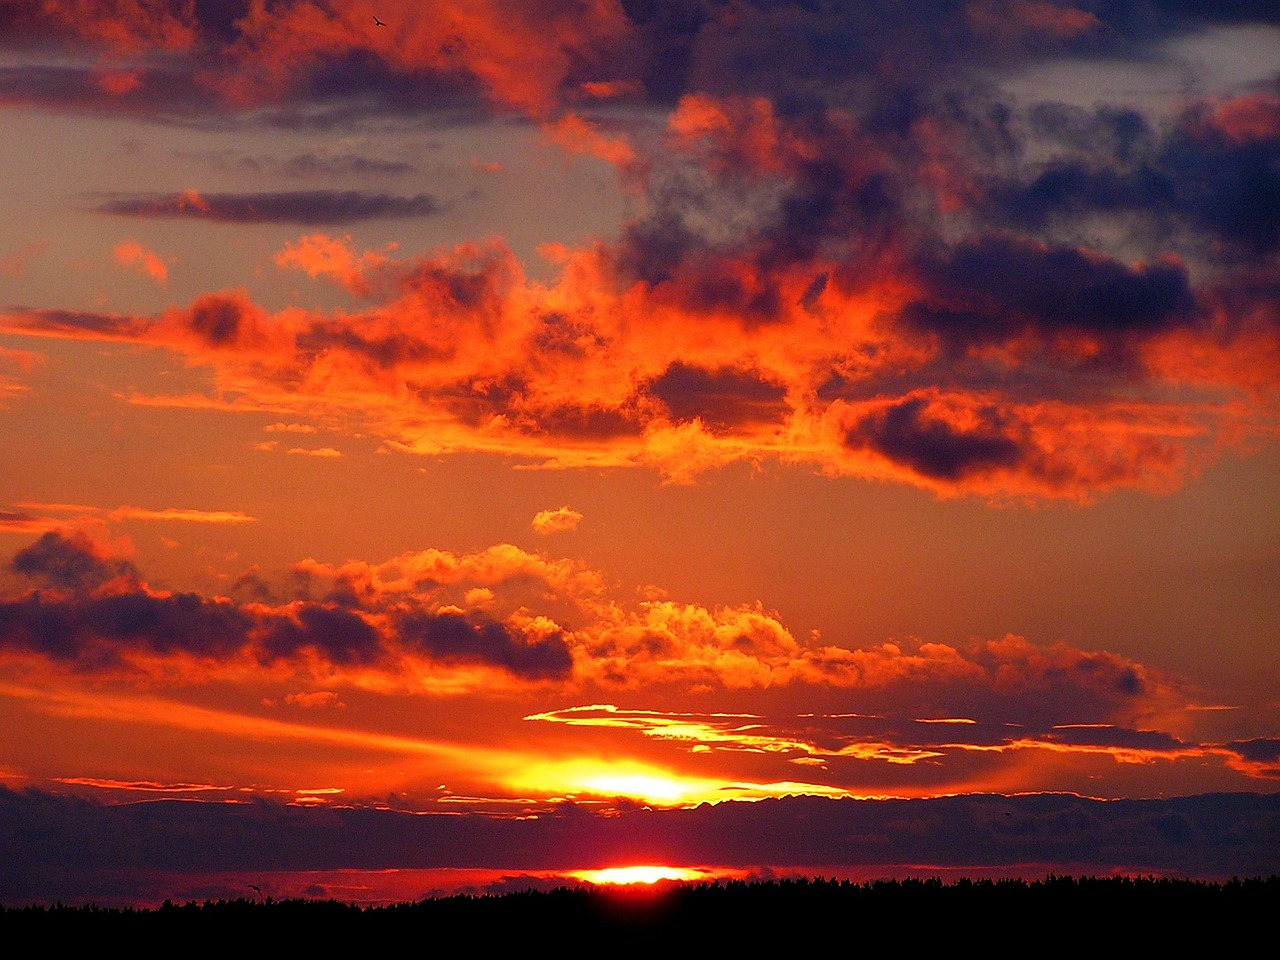 orange sky and clouds at sunset